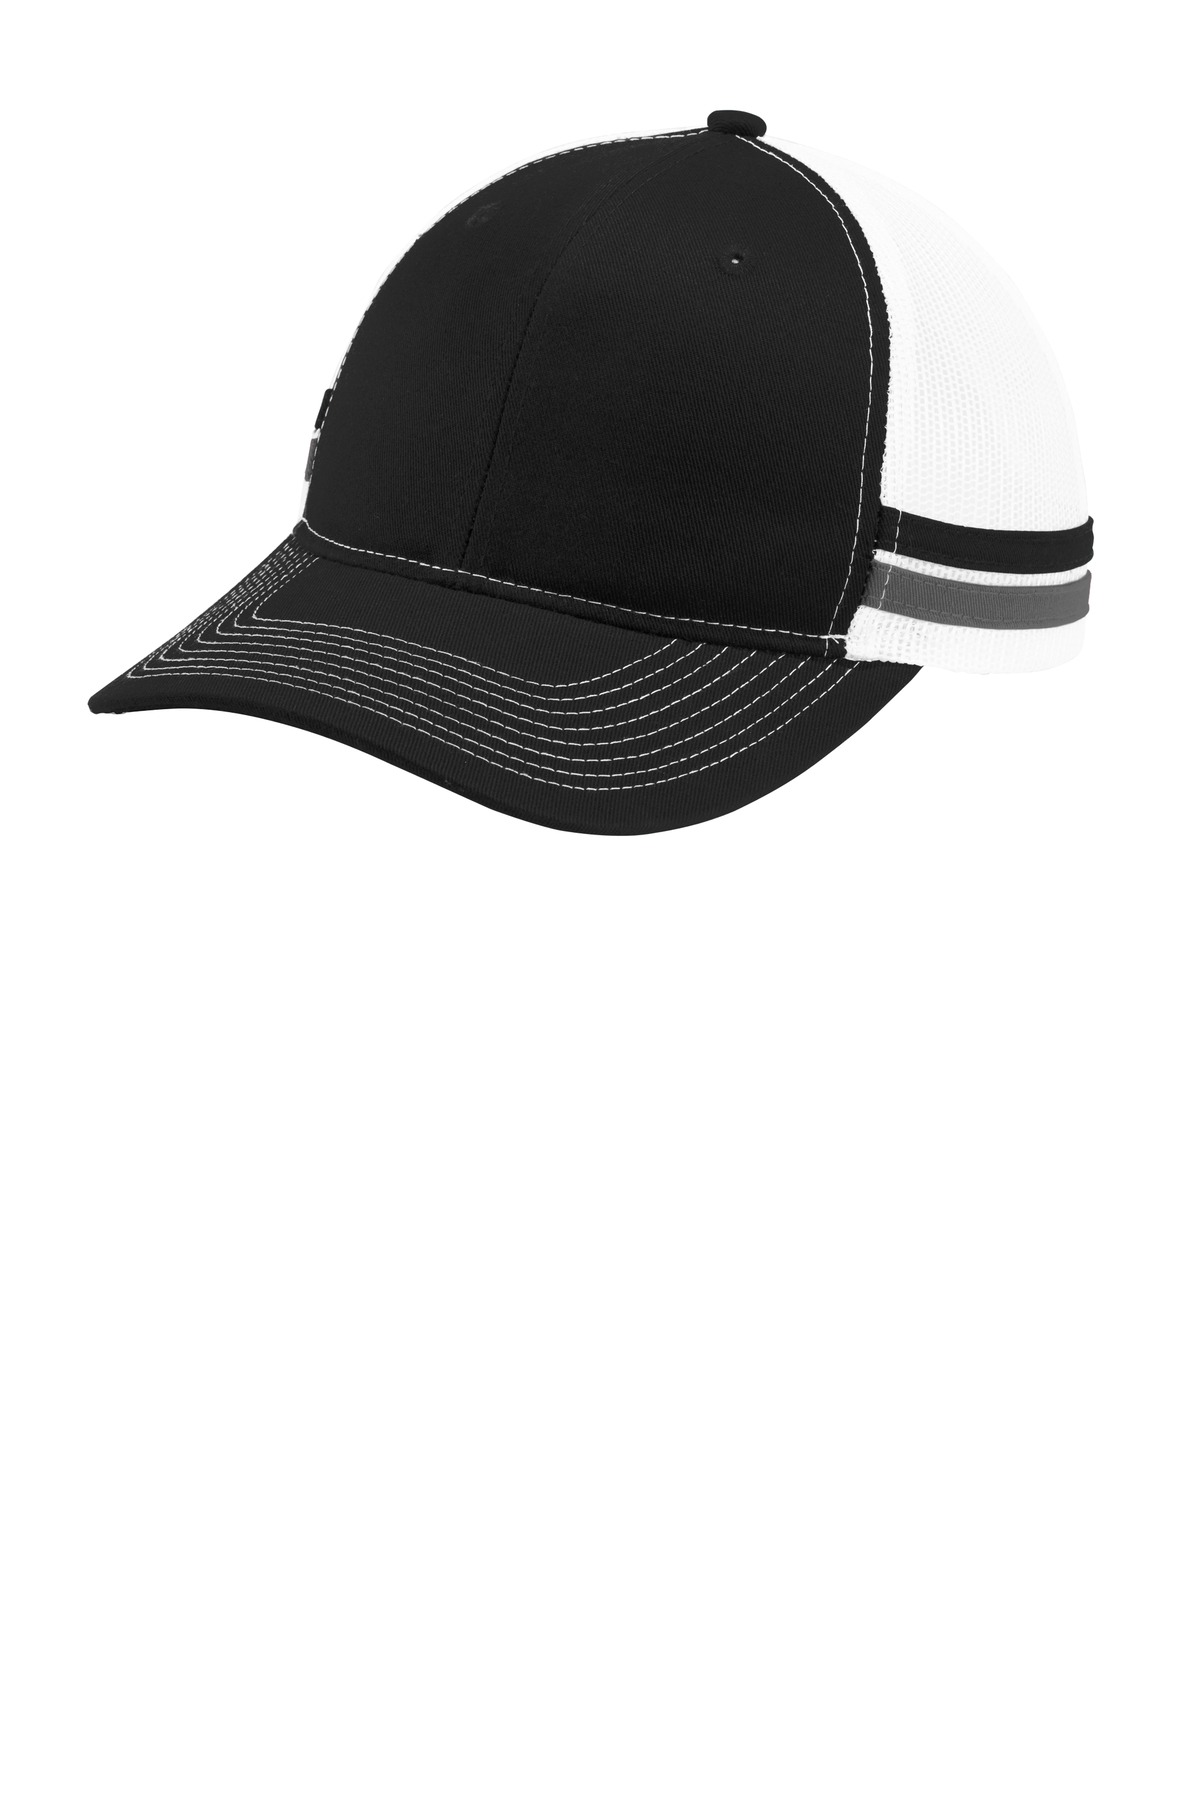 Port Authority  ®  Two-Stripe Snapback Trucker Cap. C113 - Black/ Grey Steel/ White